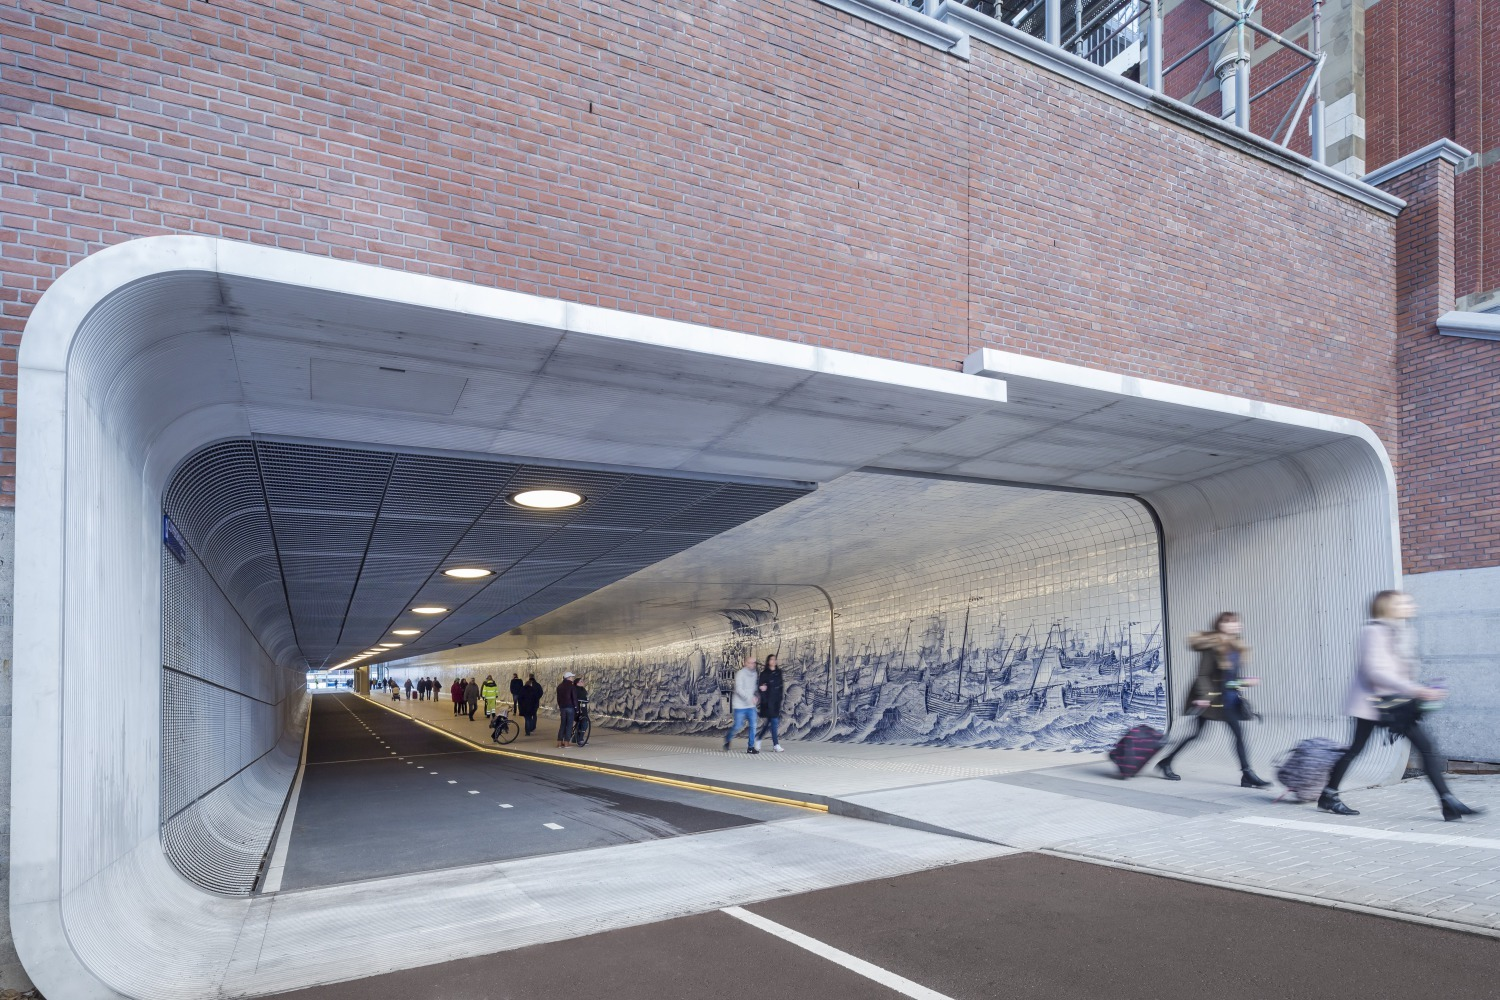 611 Langzaamverkeerspassage Amsterdam CS medium